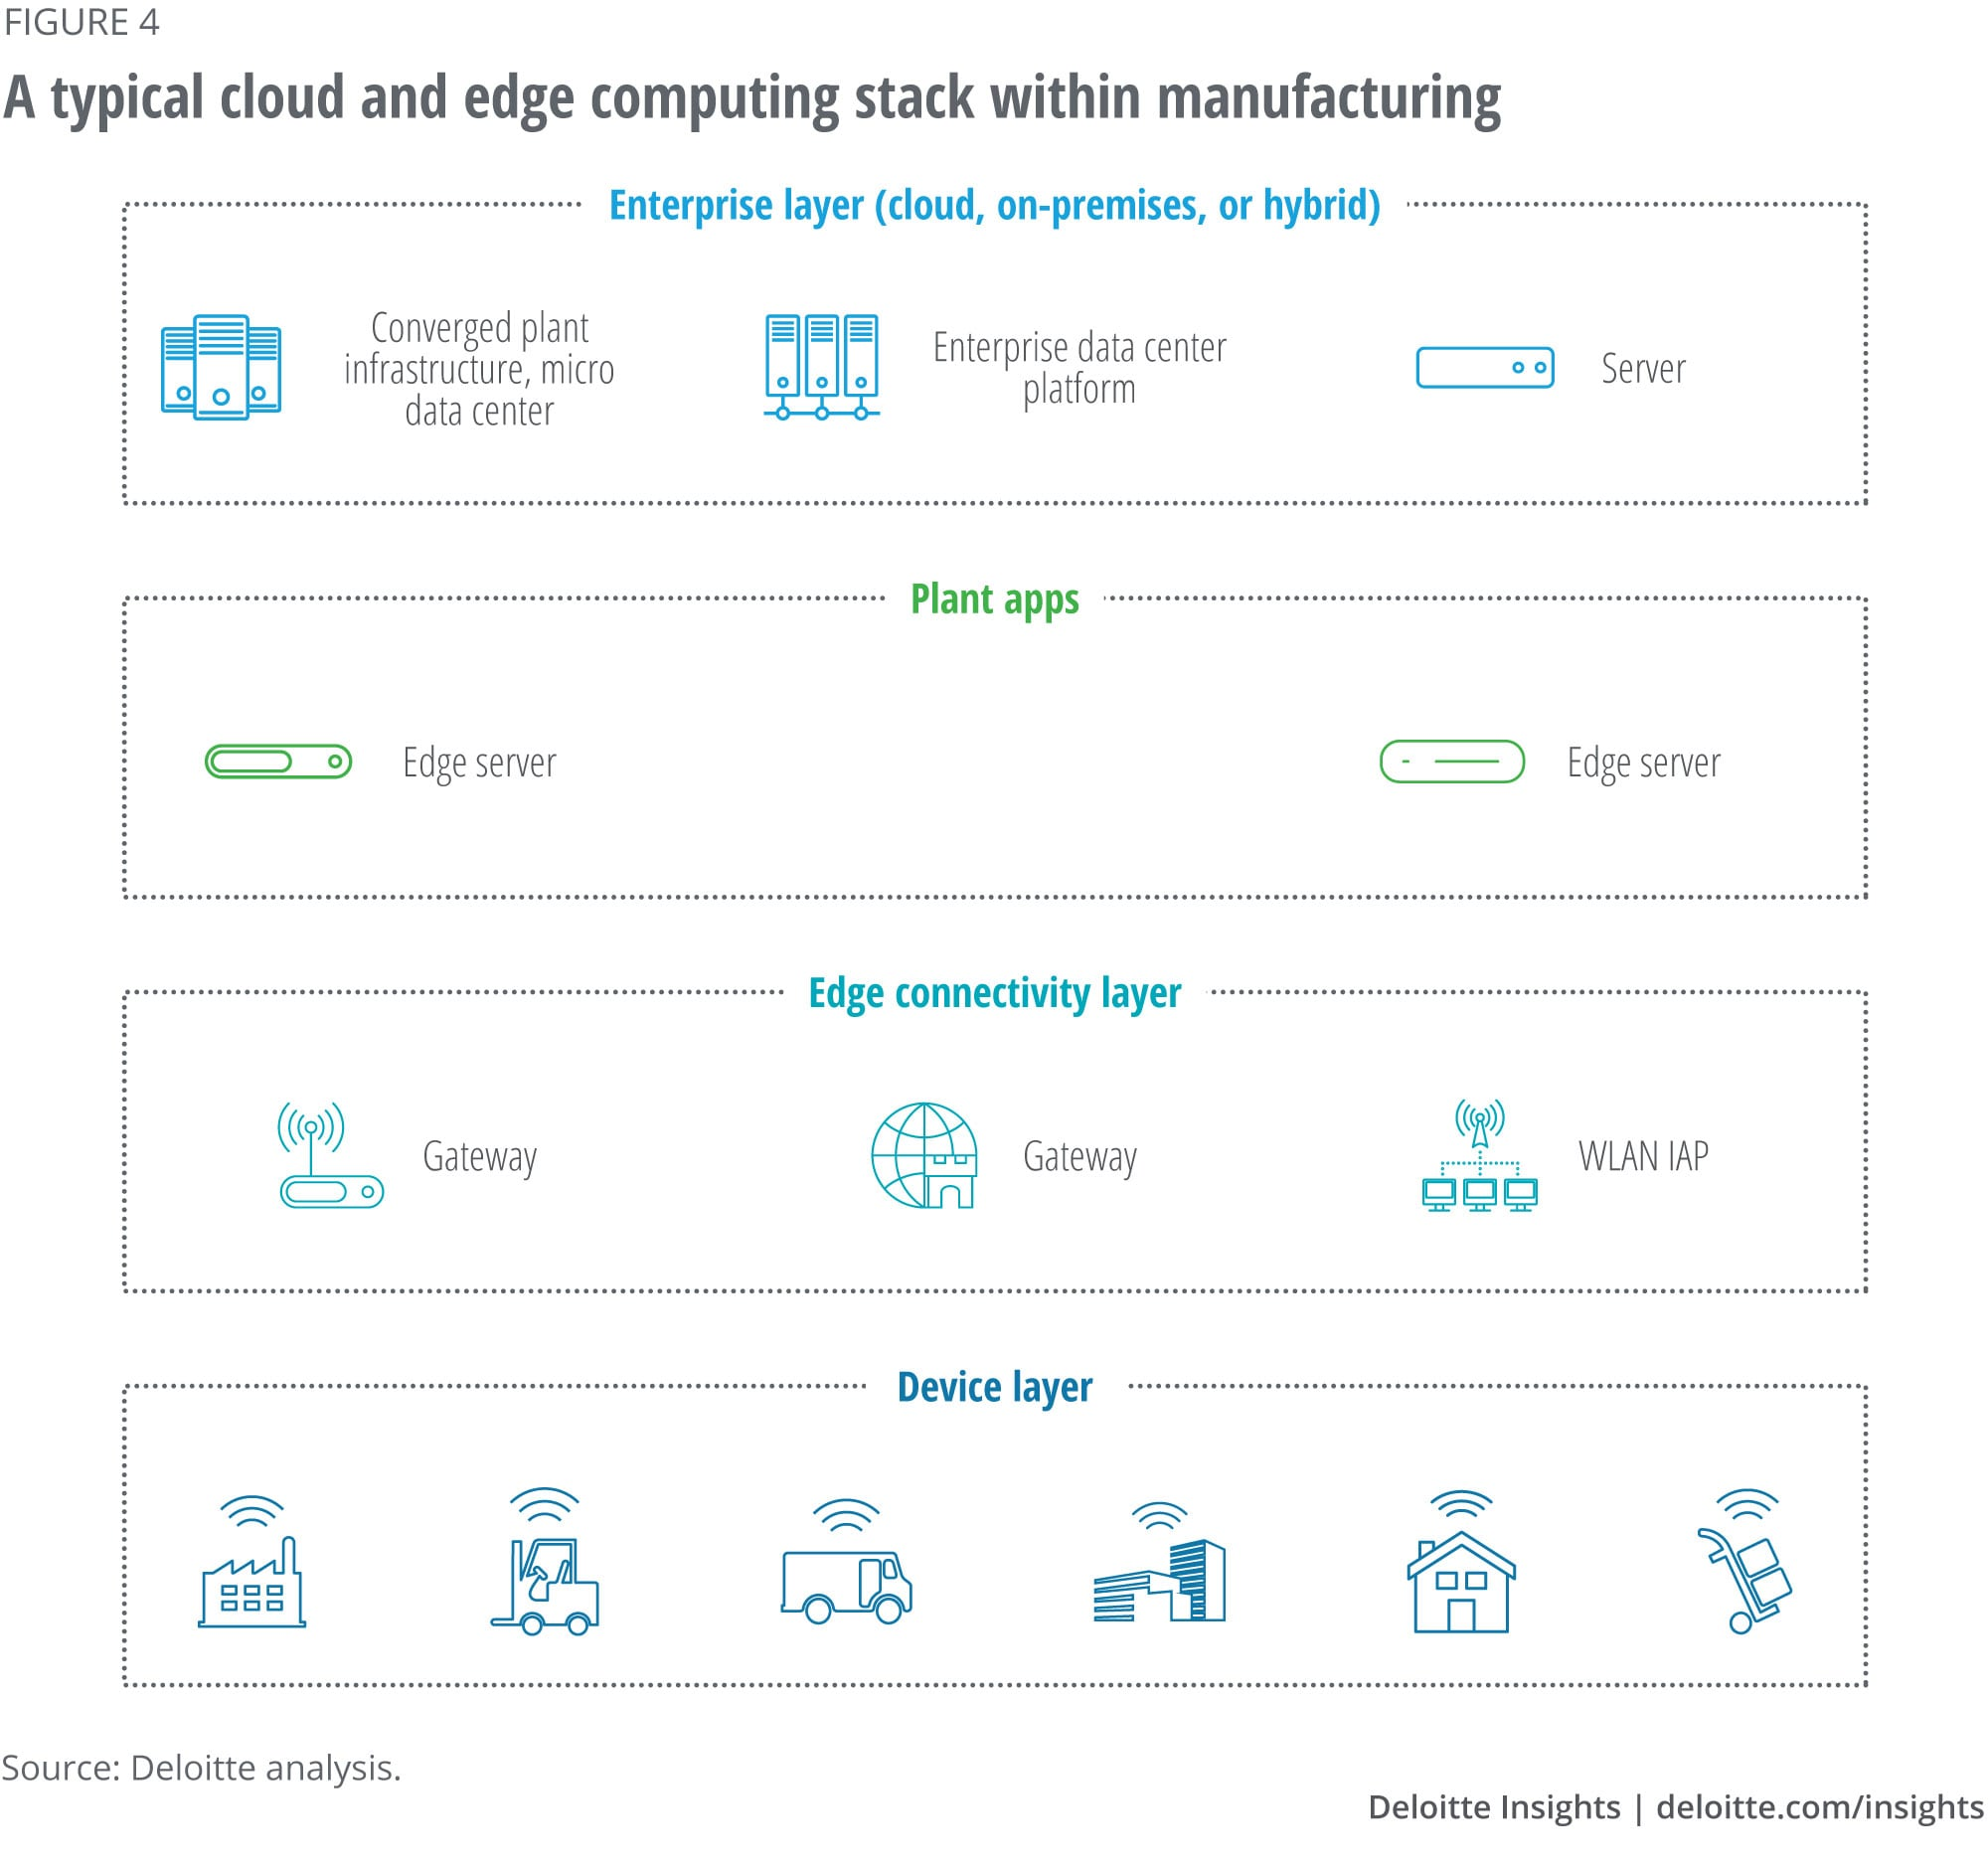 A typical cloud and edge computing stack within manufacturing